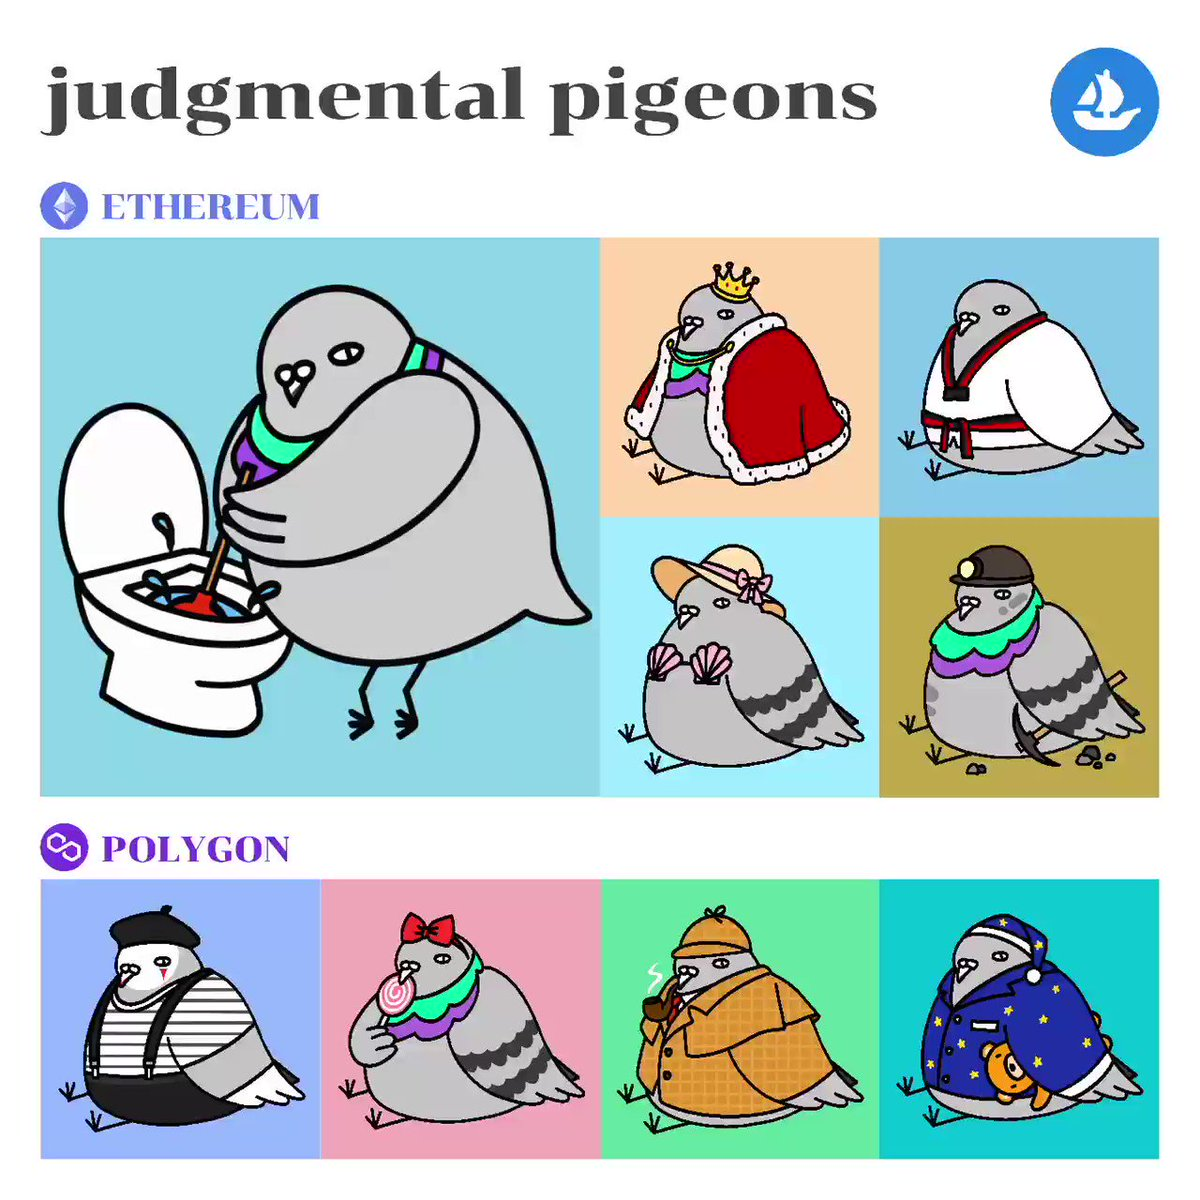 ⭐️ JUDGMENTAL PIGEONS ⭐️  🔹 0.005 - 0.02 👉 opensea.io/collection/jud… 📢 More pigeons available in the collection ✍️#pigeonsprocess for drawing processes  #nftart #nftthailand #nftthaiartists #nftcommunity #nftmarket #nftcollector #nft #nftdrop #OpenSeaNFT #PolygonNFT